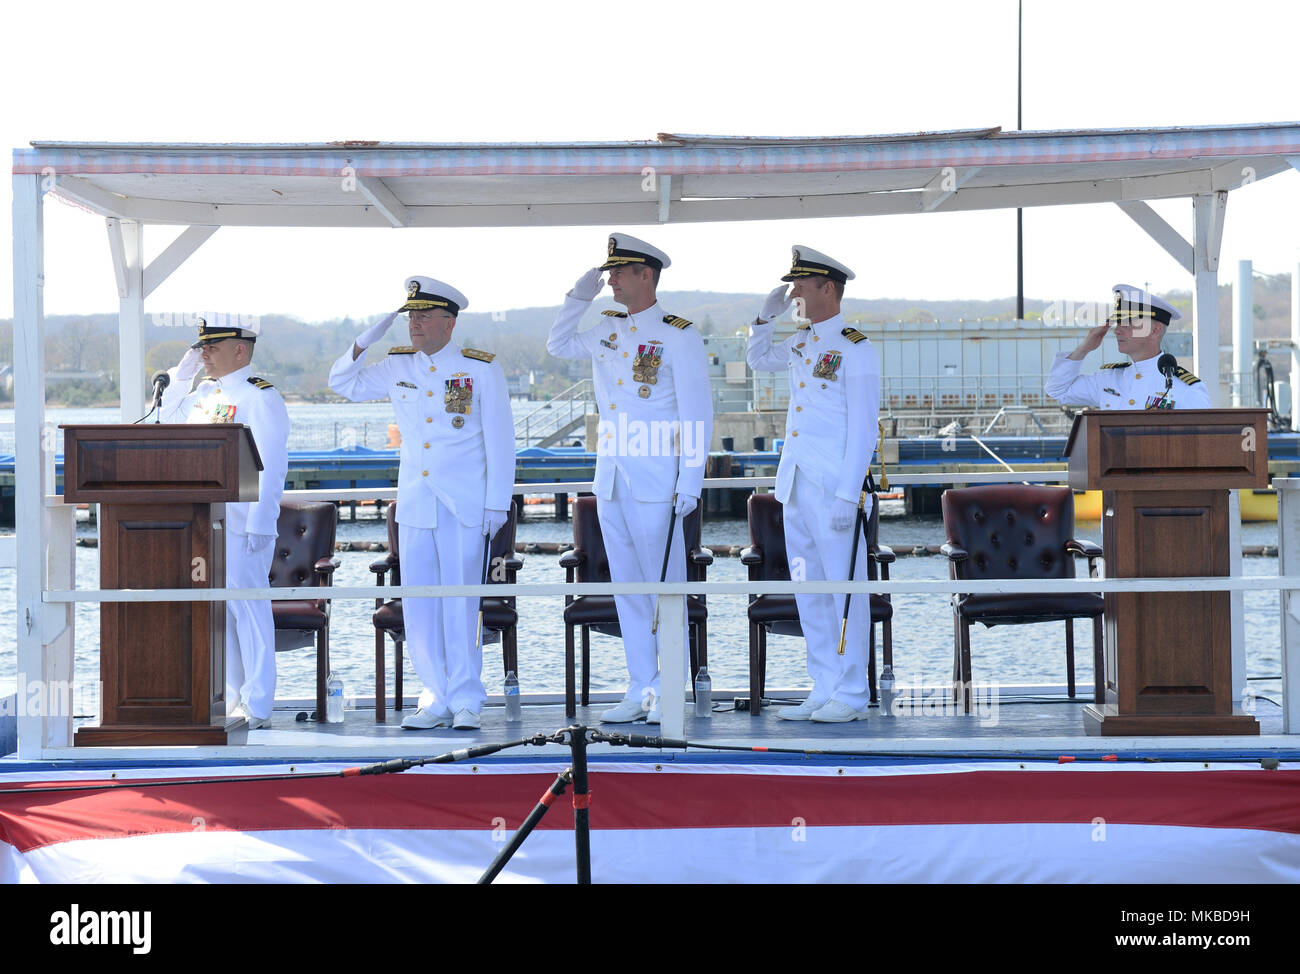 180503-N-LW591-020 GROTON, Conn. (May. 3, 2018) The official party salutes the colors during the change of command ceremony for Commander, Submarine Squadron (COMSUBRON) 12 onboard the Los Angeles-class, nuclear-powered, fast-attack submarine USS San Juan (SSN-751) at Naval Submarine Base New London in Groton, Conn., Thursday, May 3. Capt. David Youtt relieved Capt. Ollie Lewis as the commander of COMSUBRON 12. The mission of COMSUBRON 12 is to provide attack submarines that are ready, willing, and able to meet the unique challenges of undersea combat and deployed operations in the unforgiving - Stock Image